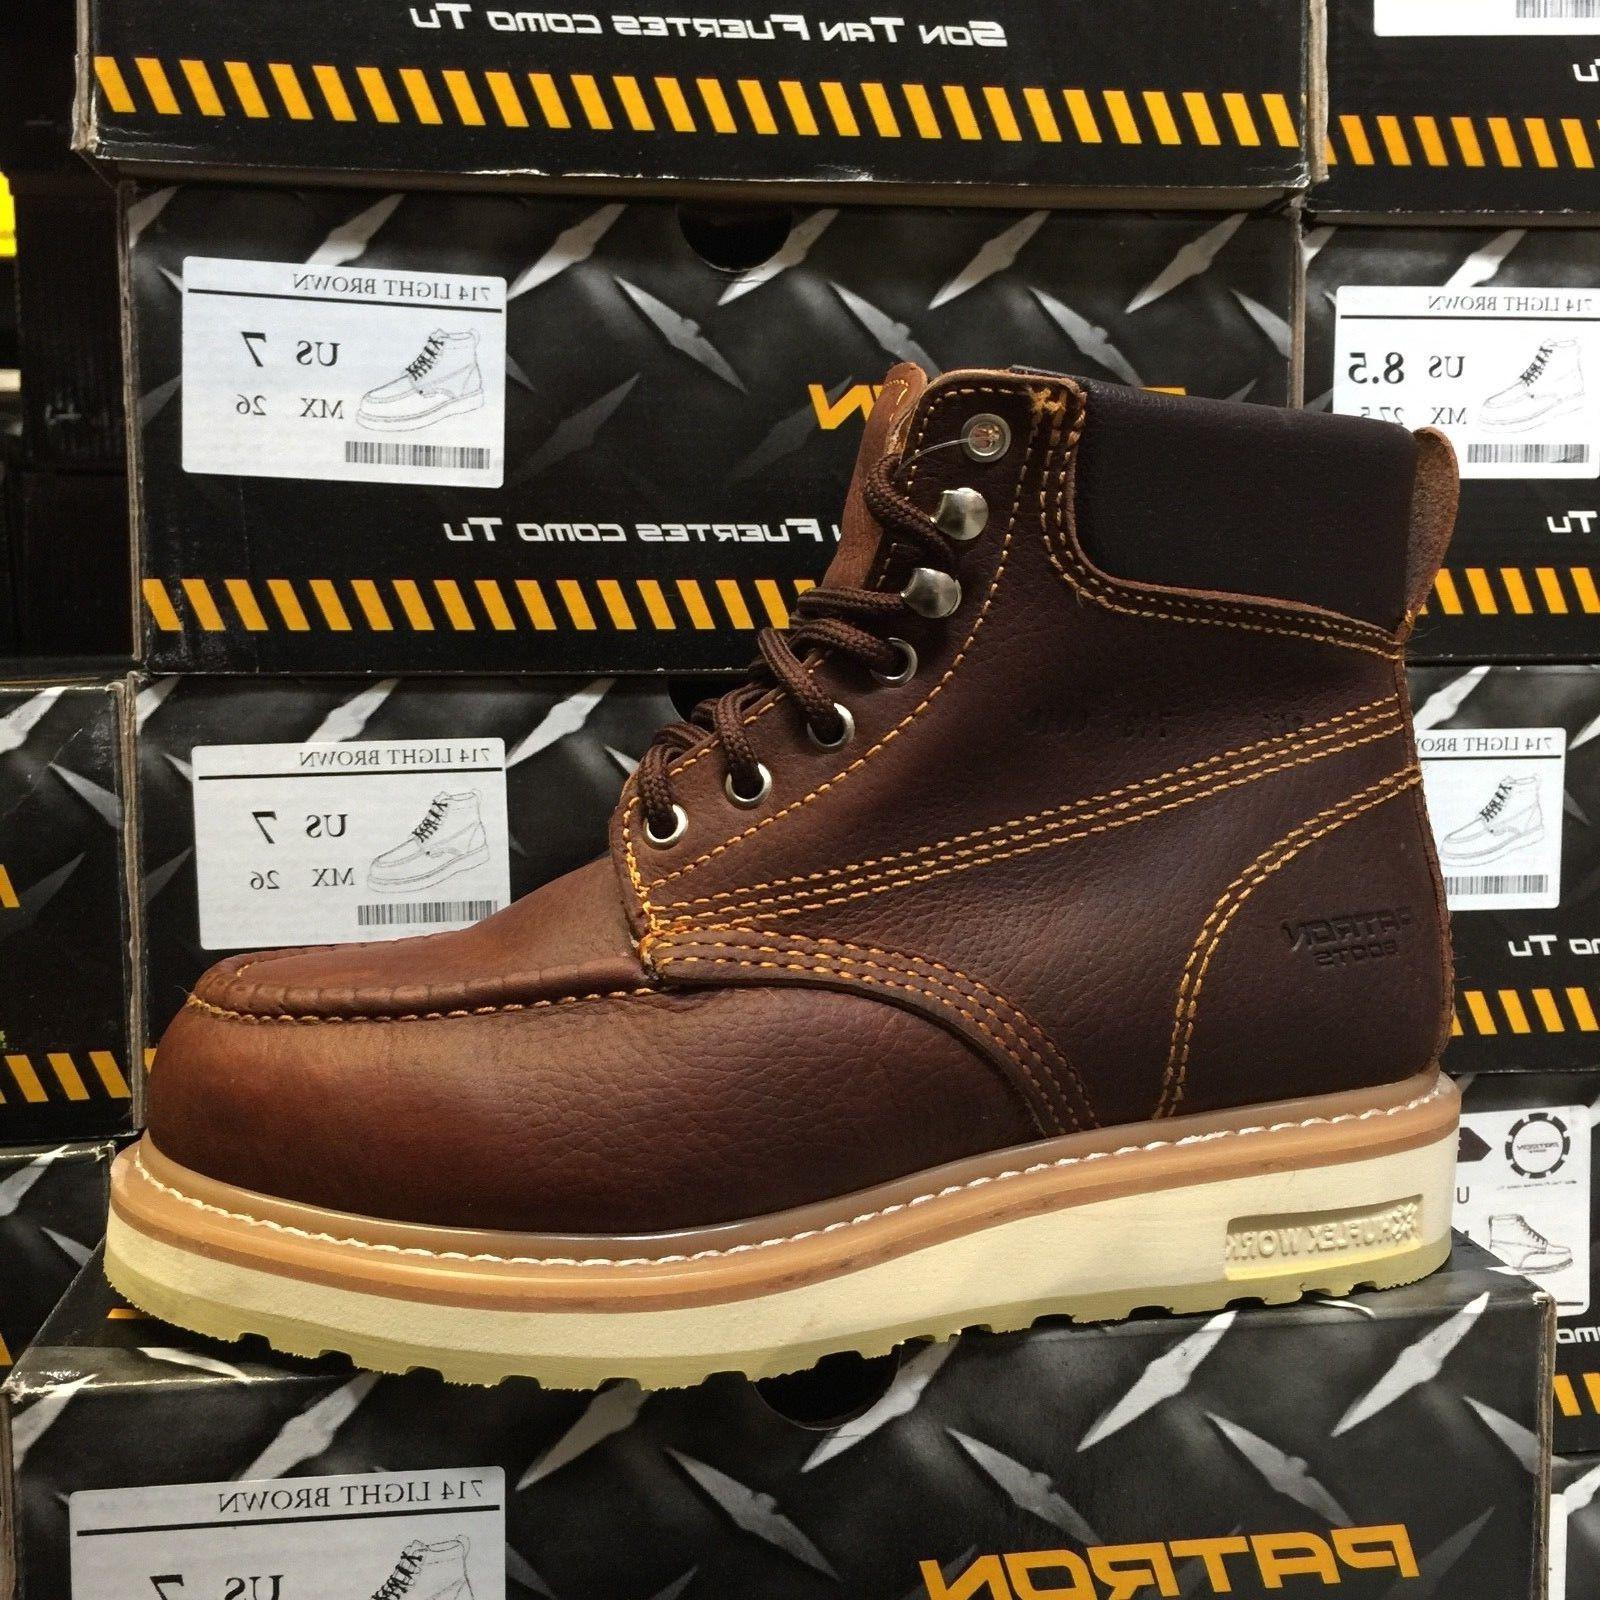 1a3edc486f8 MEN'S WORK BOOTS MOC TOE GENUINE LEATHER LACE